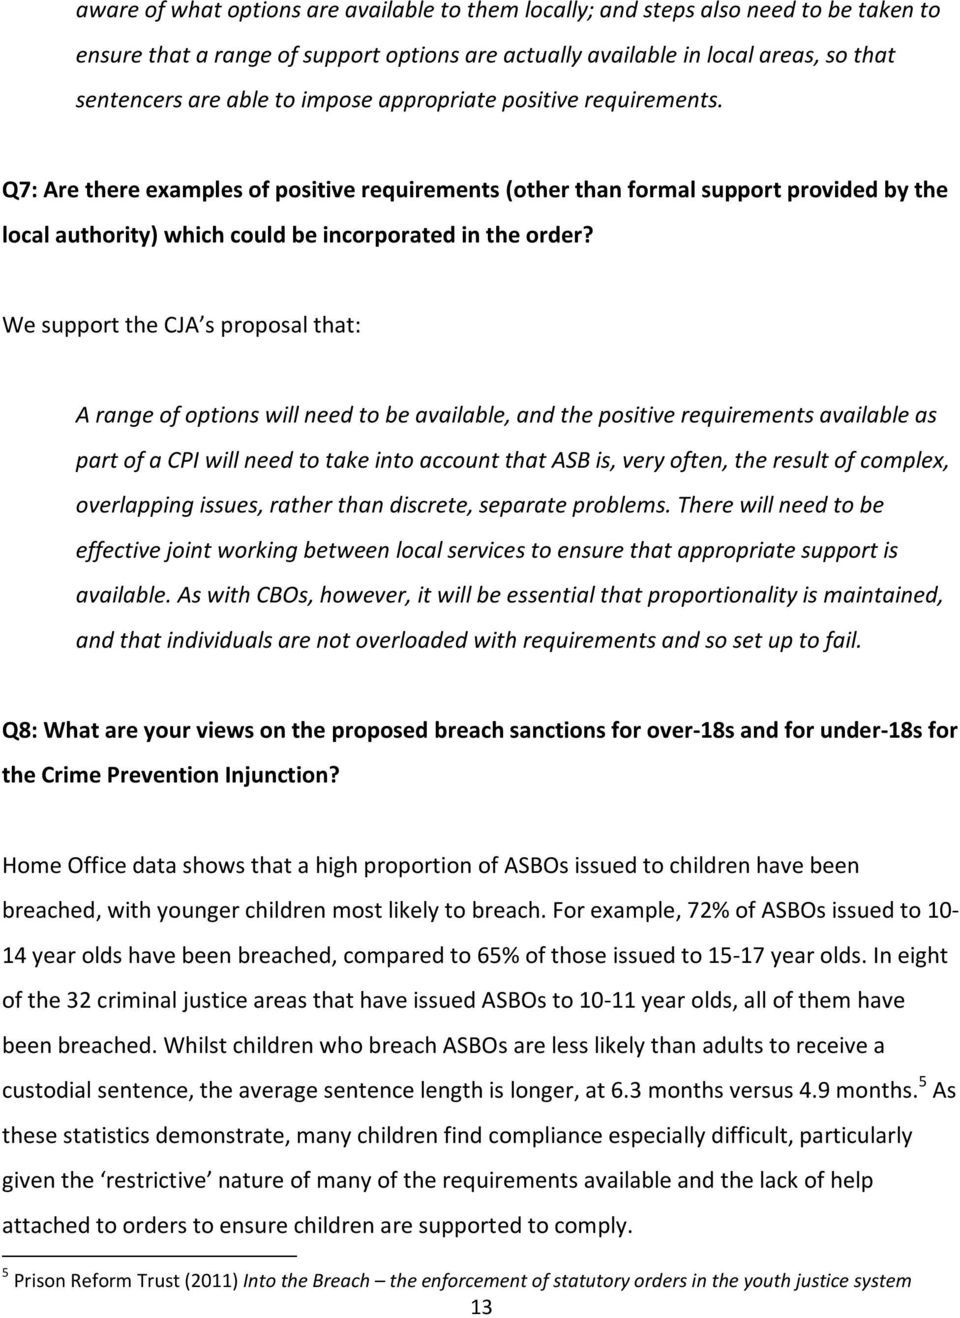 We support the CJA s proposal that: A range of options will need to be available, and the positive requirements available as part of a CPI will need to take into account that ASB is, very often, the